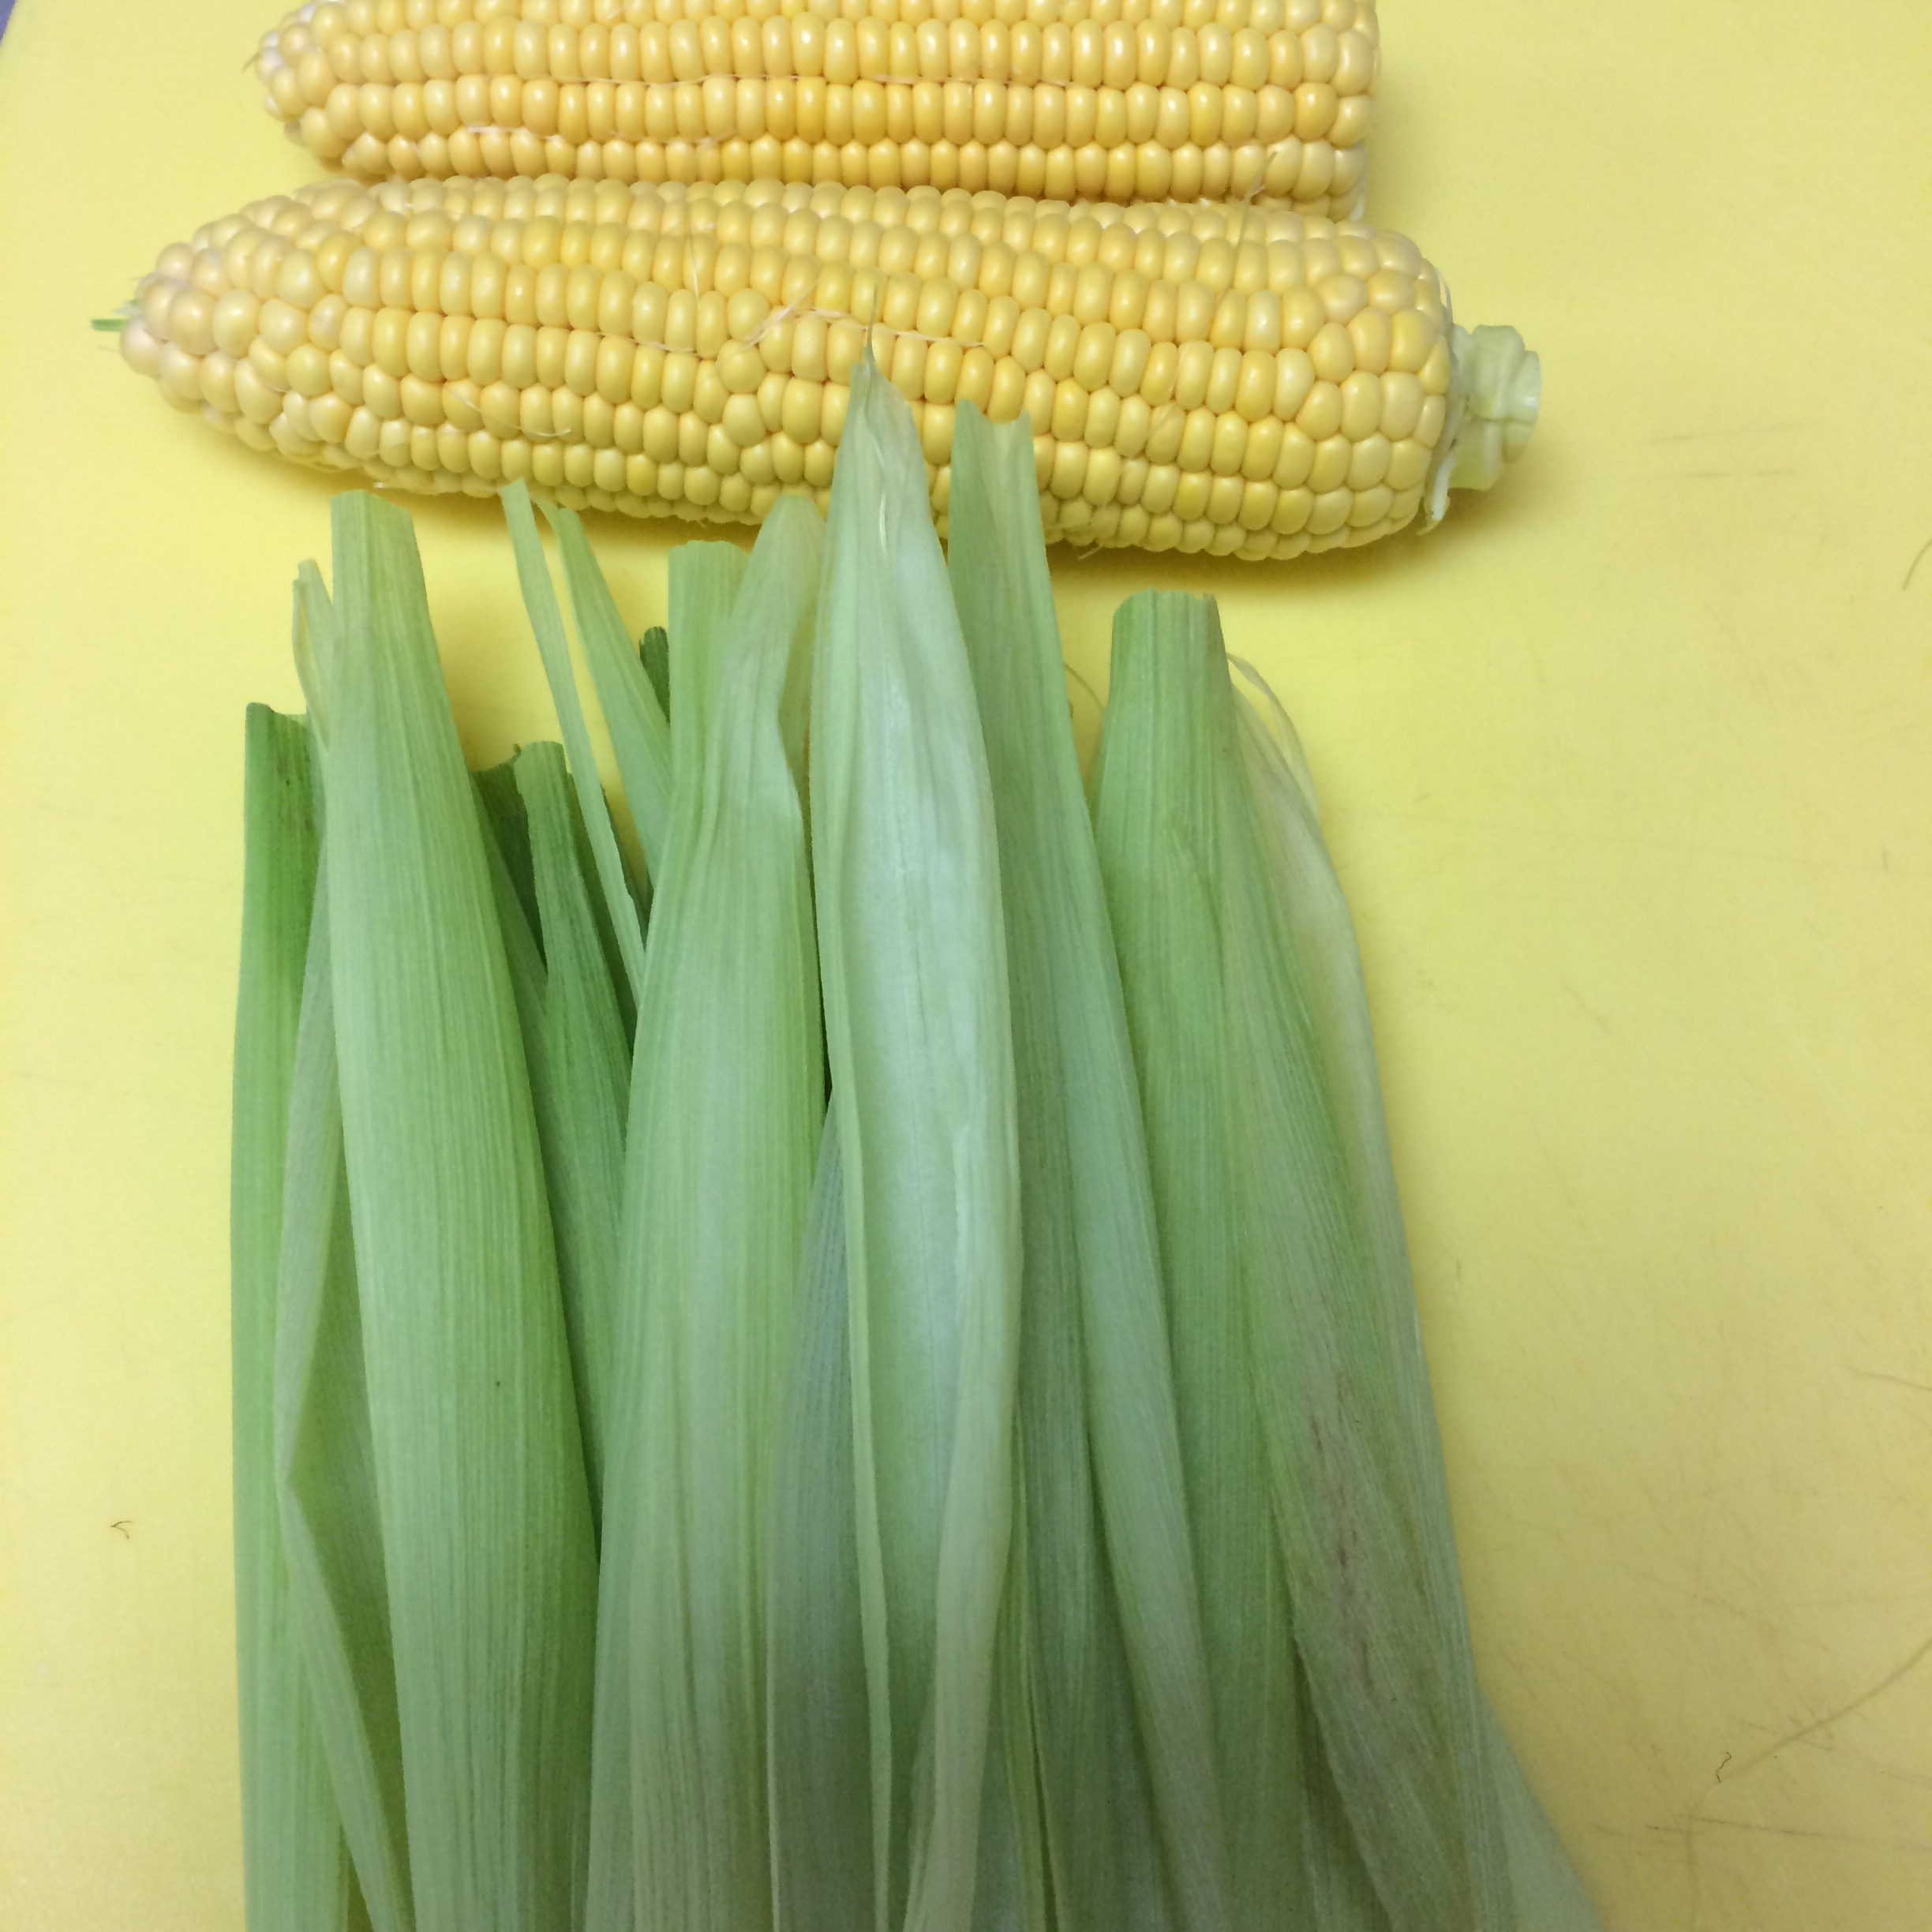 Corn and Corn Husks